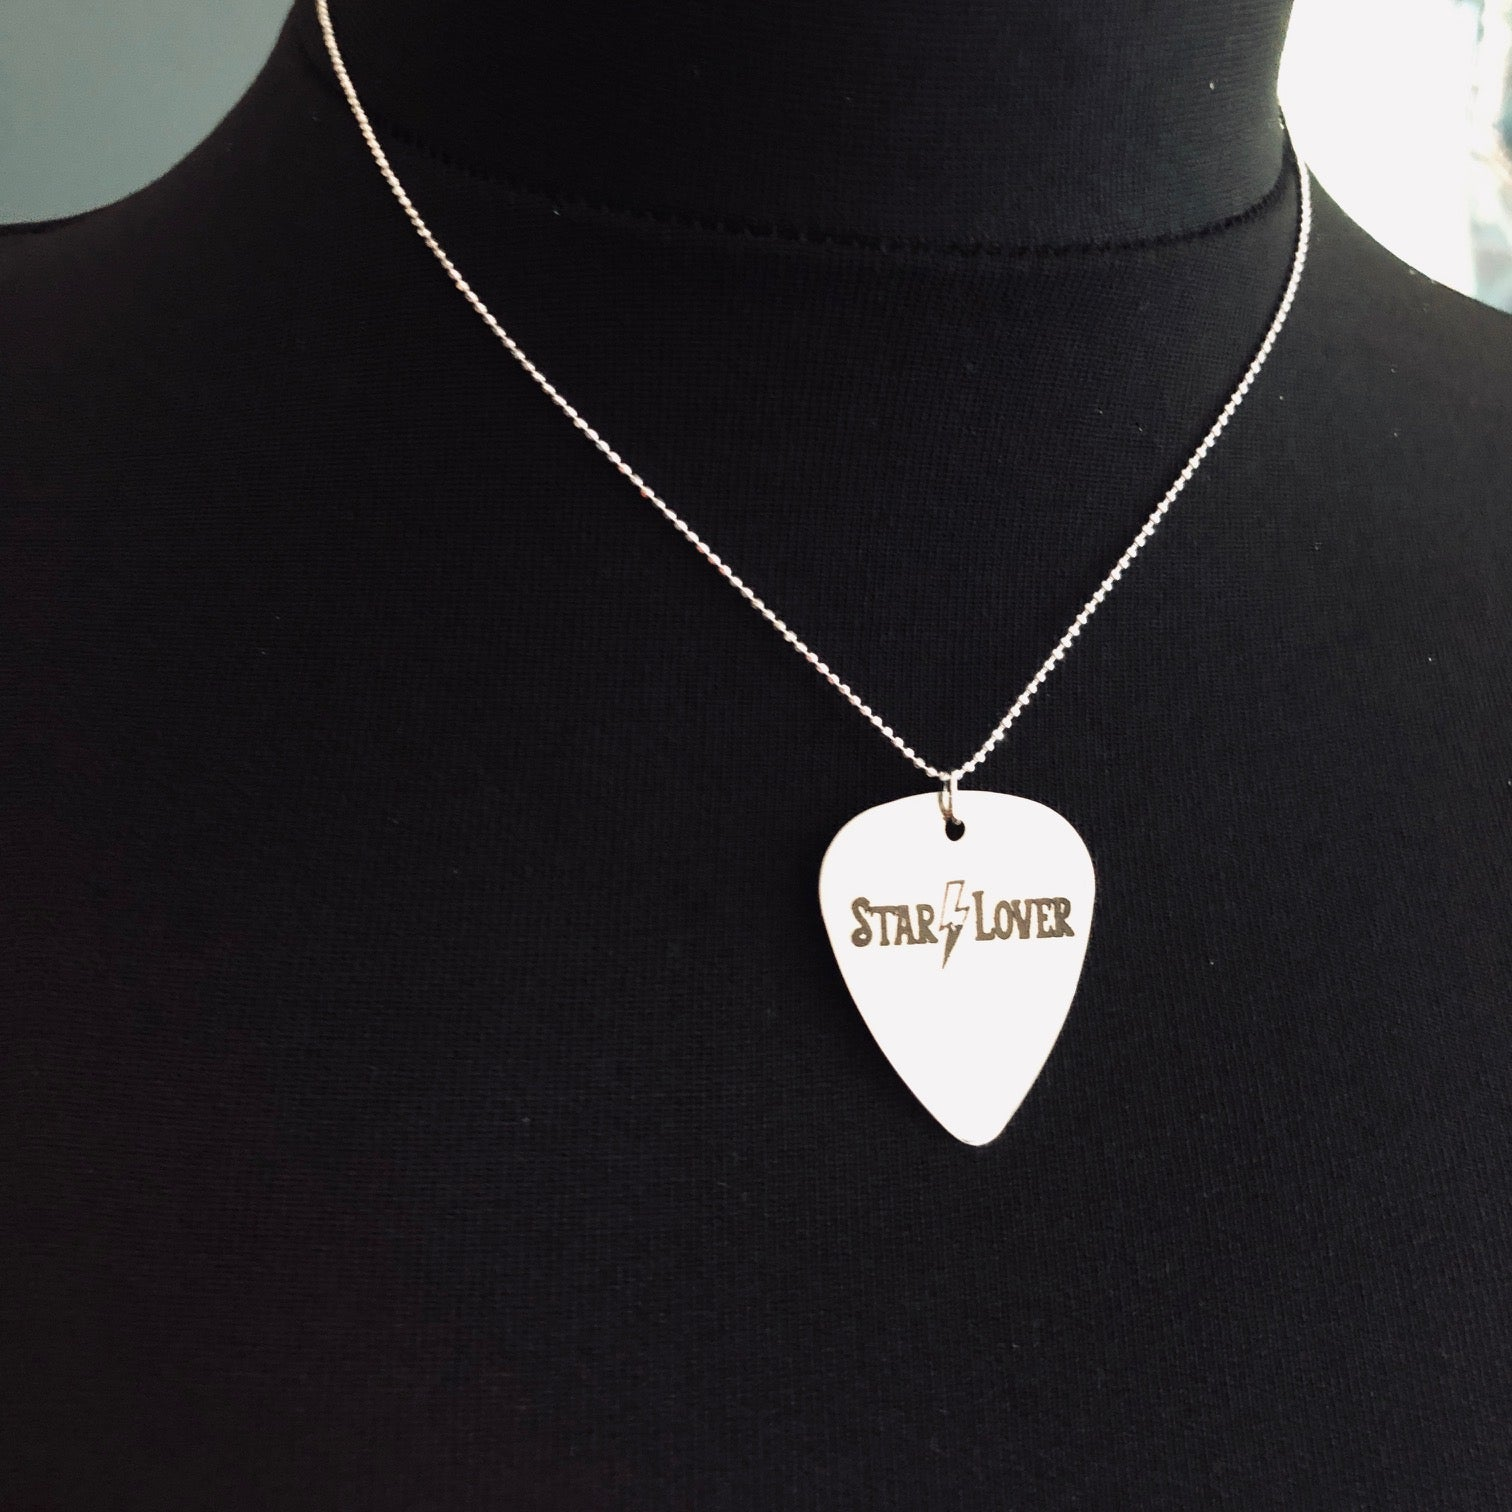 Starlover Guitar Pick Necklace